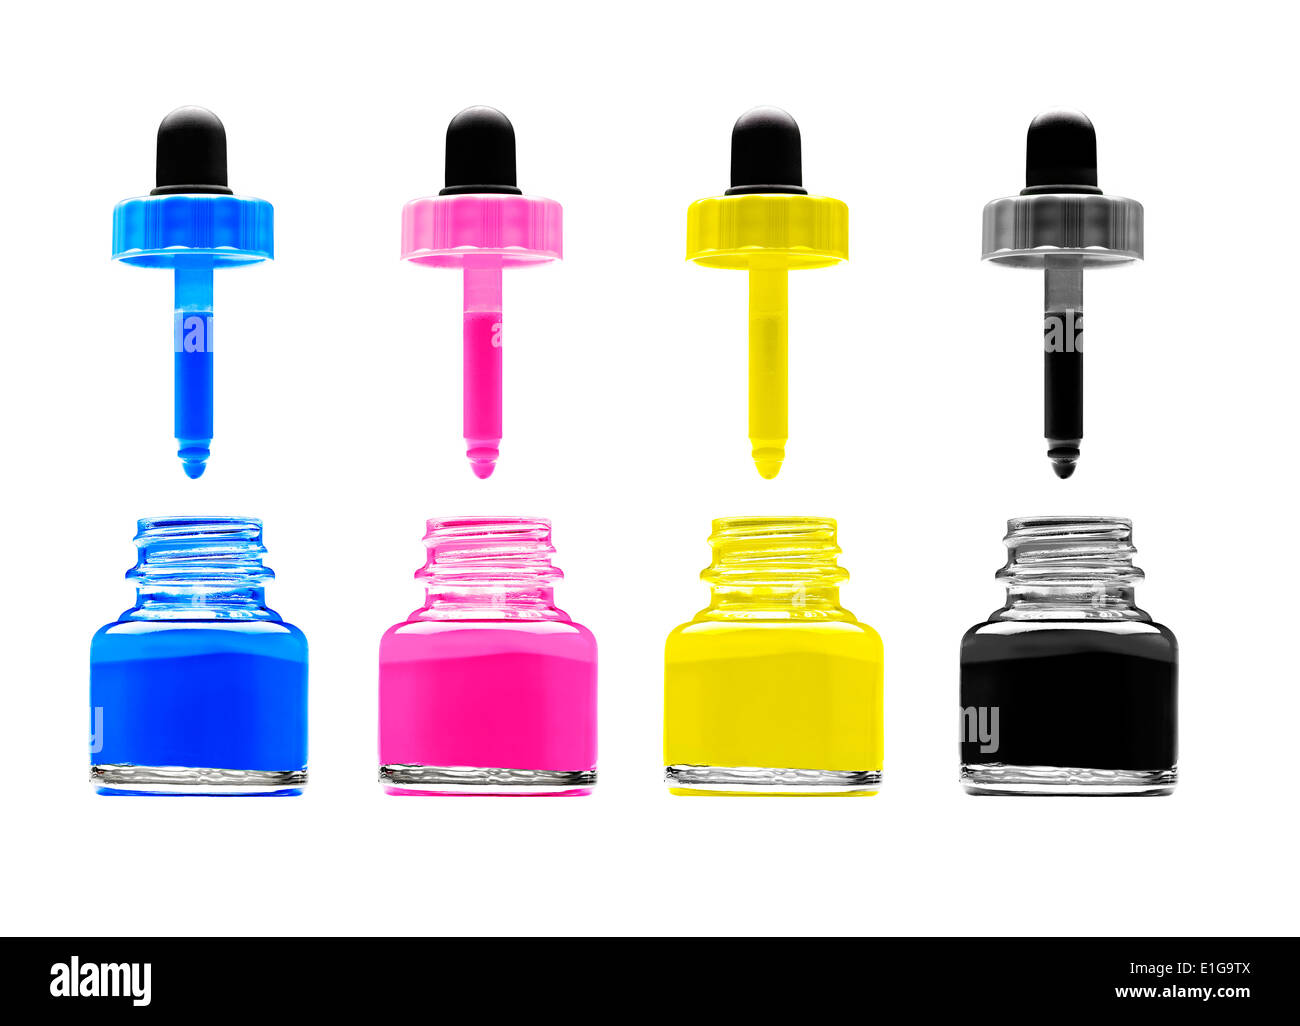 CMYK - Magenta, cyan, yellow and black on white background - Stock Image